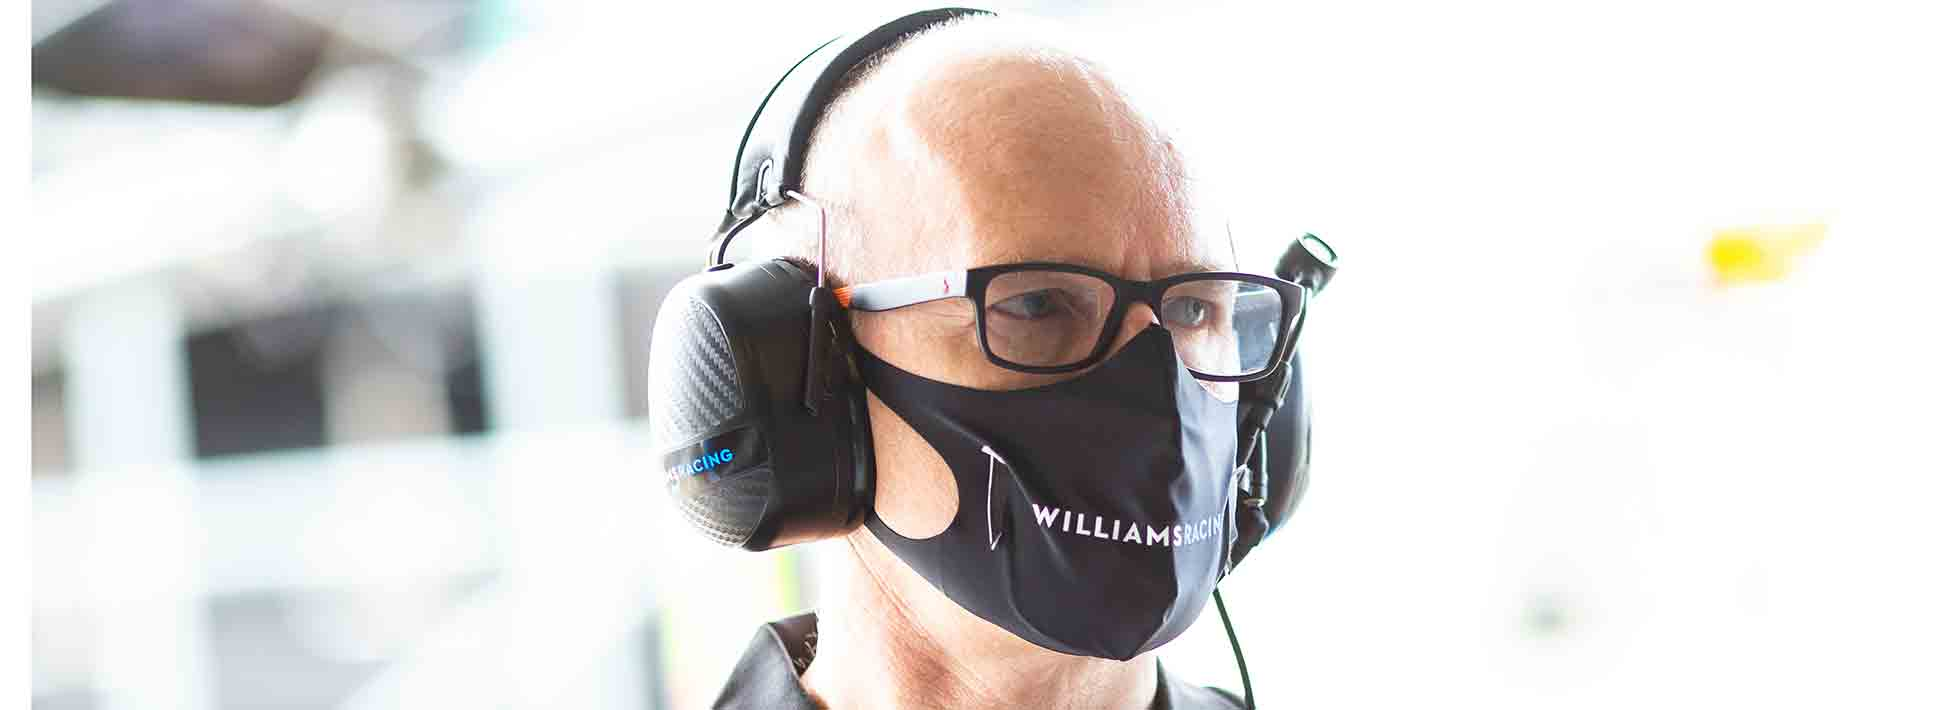 Williams Racing appoints Simon Roberts as Acting Team Principal